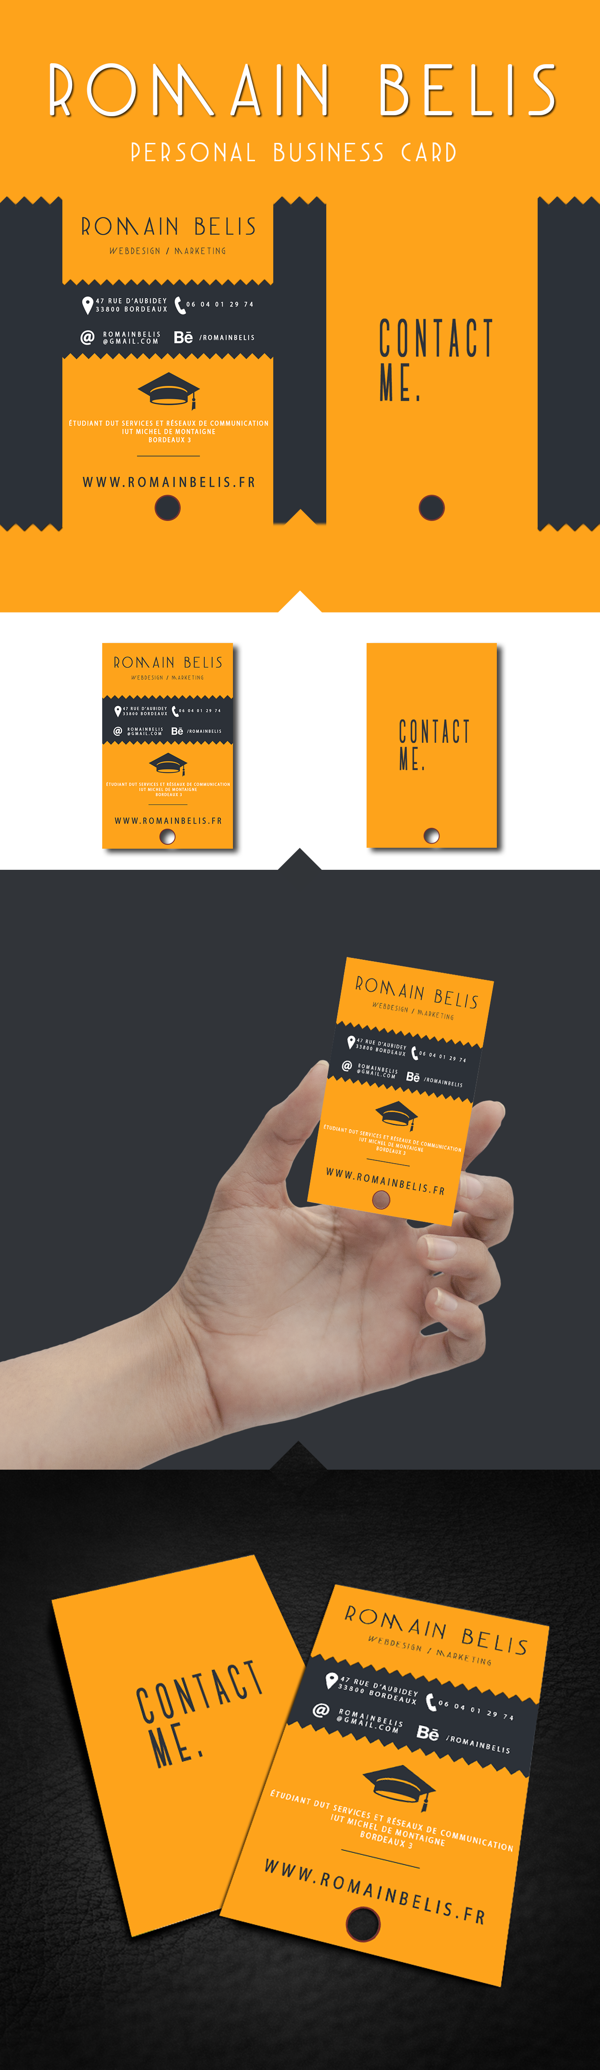 My Personal Business Card by Romain Belis in Showcase of 50 Creative Business Cards